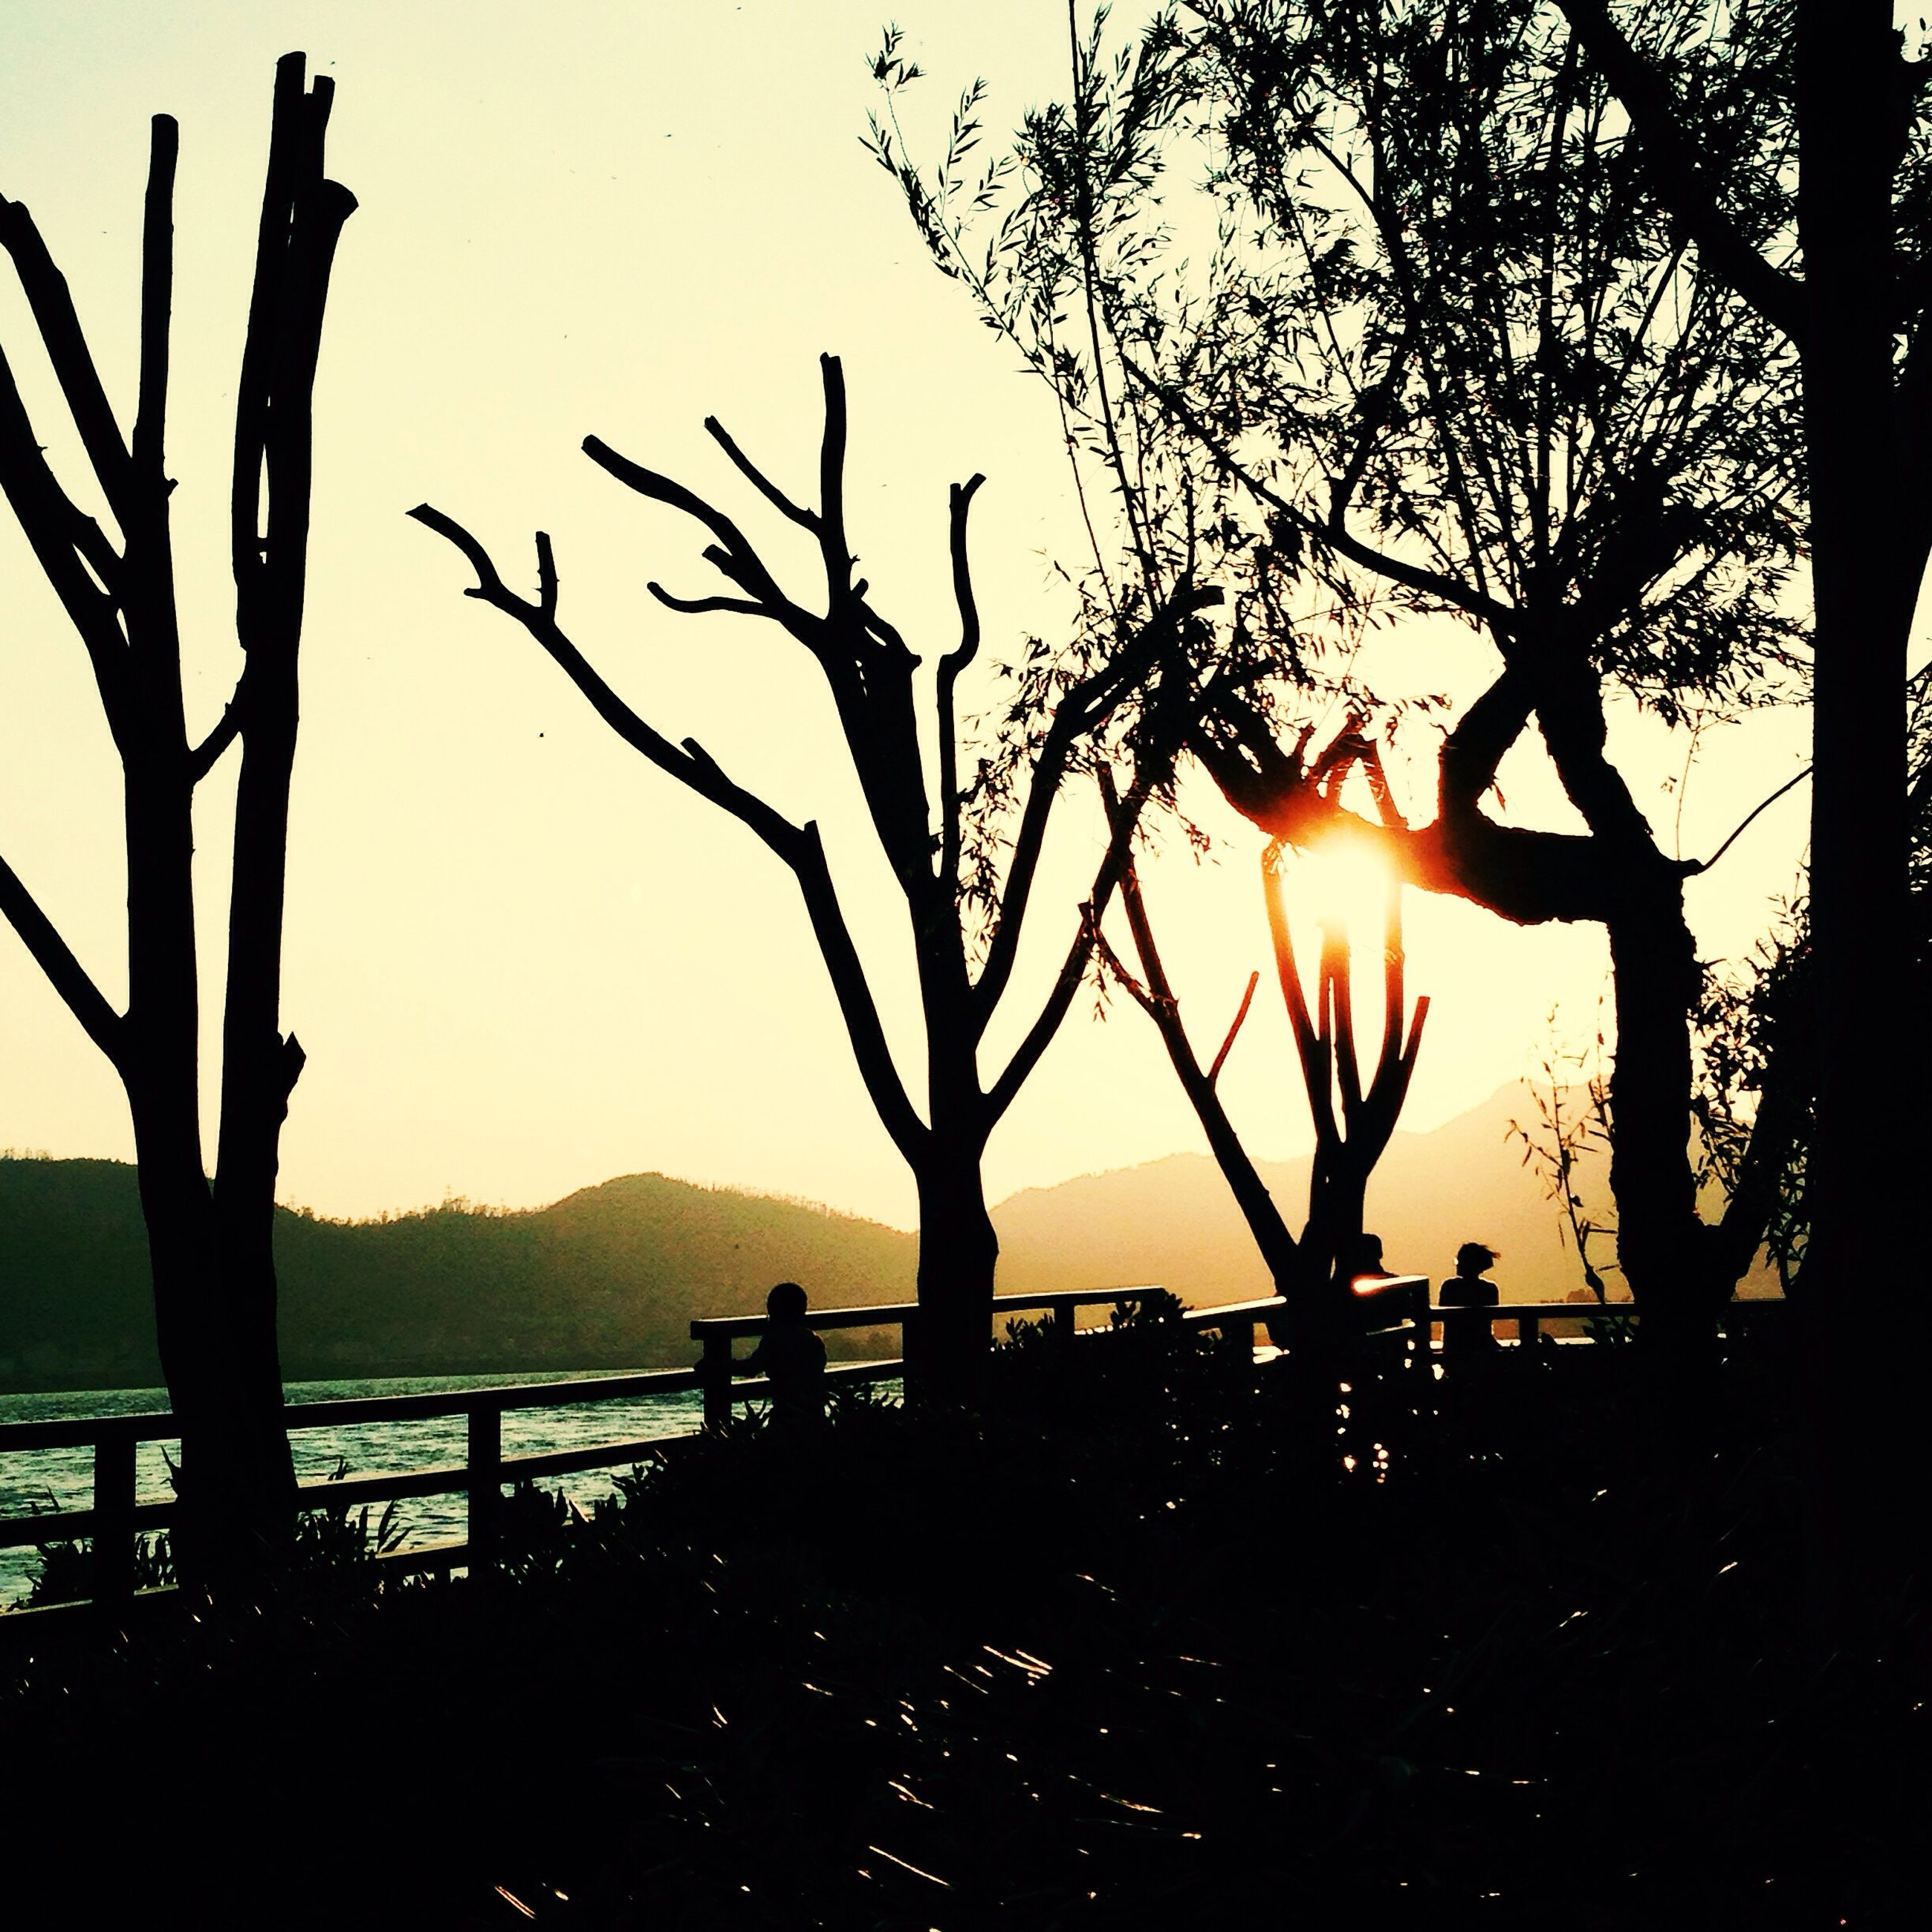 silhouette, sunset, tree, sun, scenics, tranquility, tranquil scene, water, branch, bare tree, beauty in nature, nature, tree trunk, sky, sunlight, idyllic, lake, orange color, back lit, outdoors